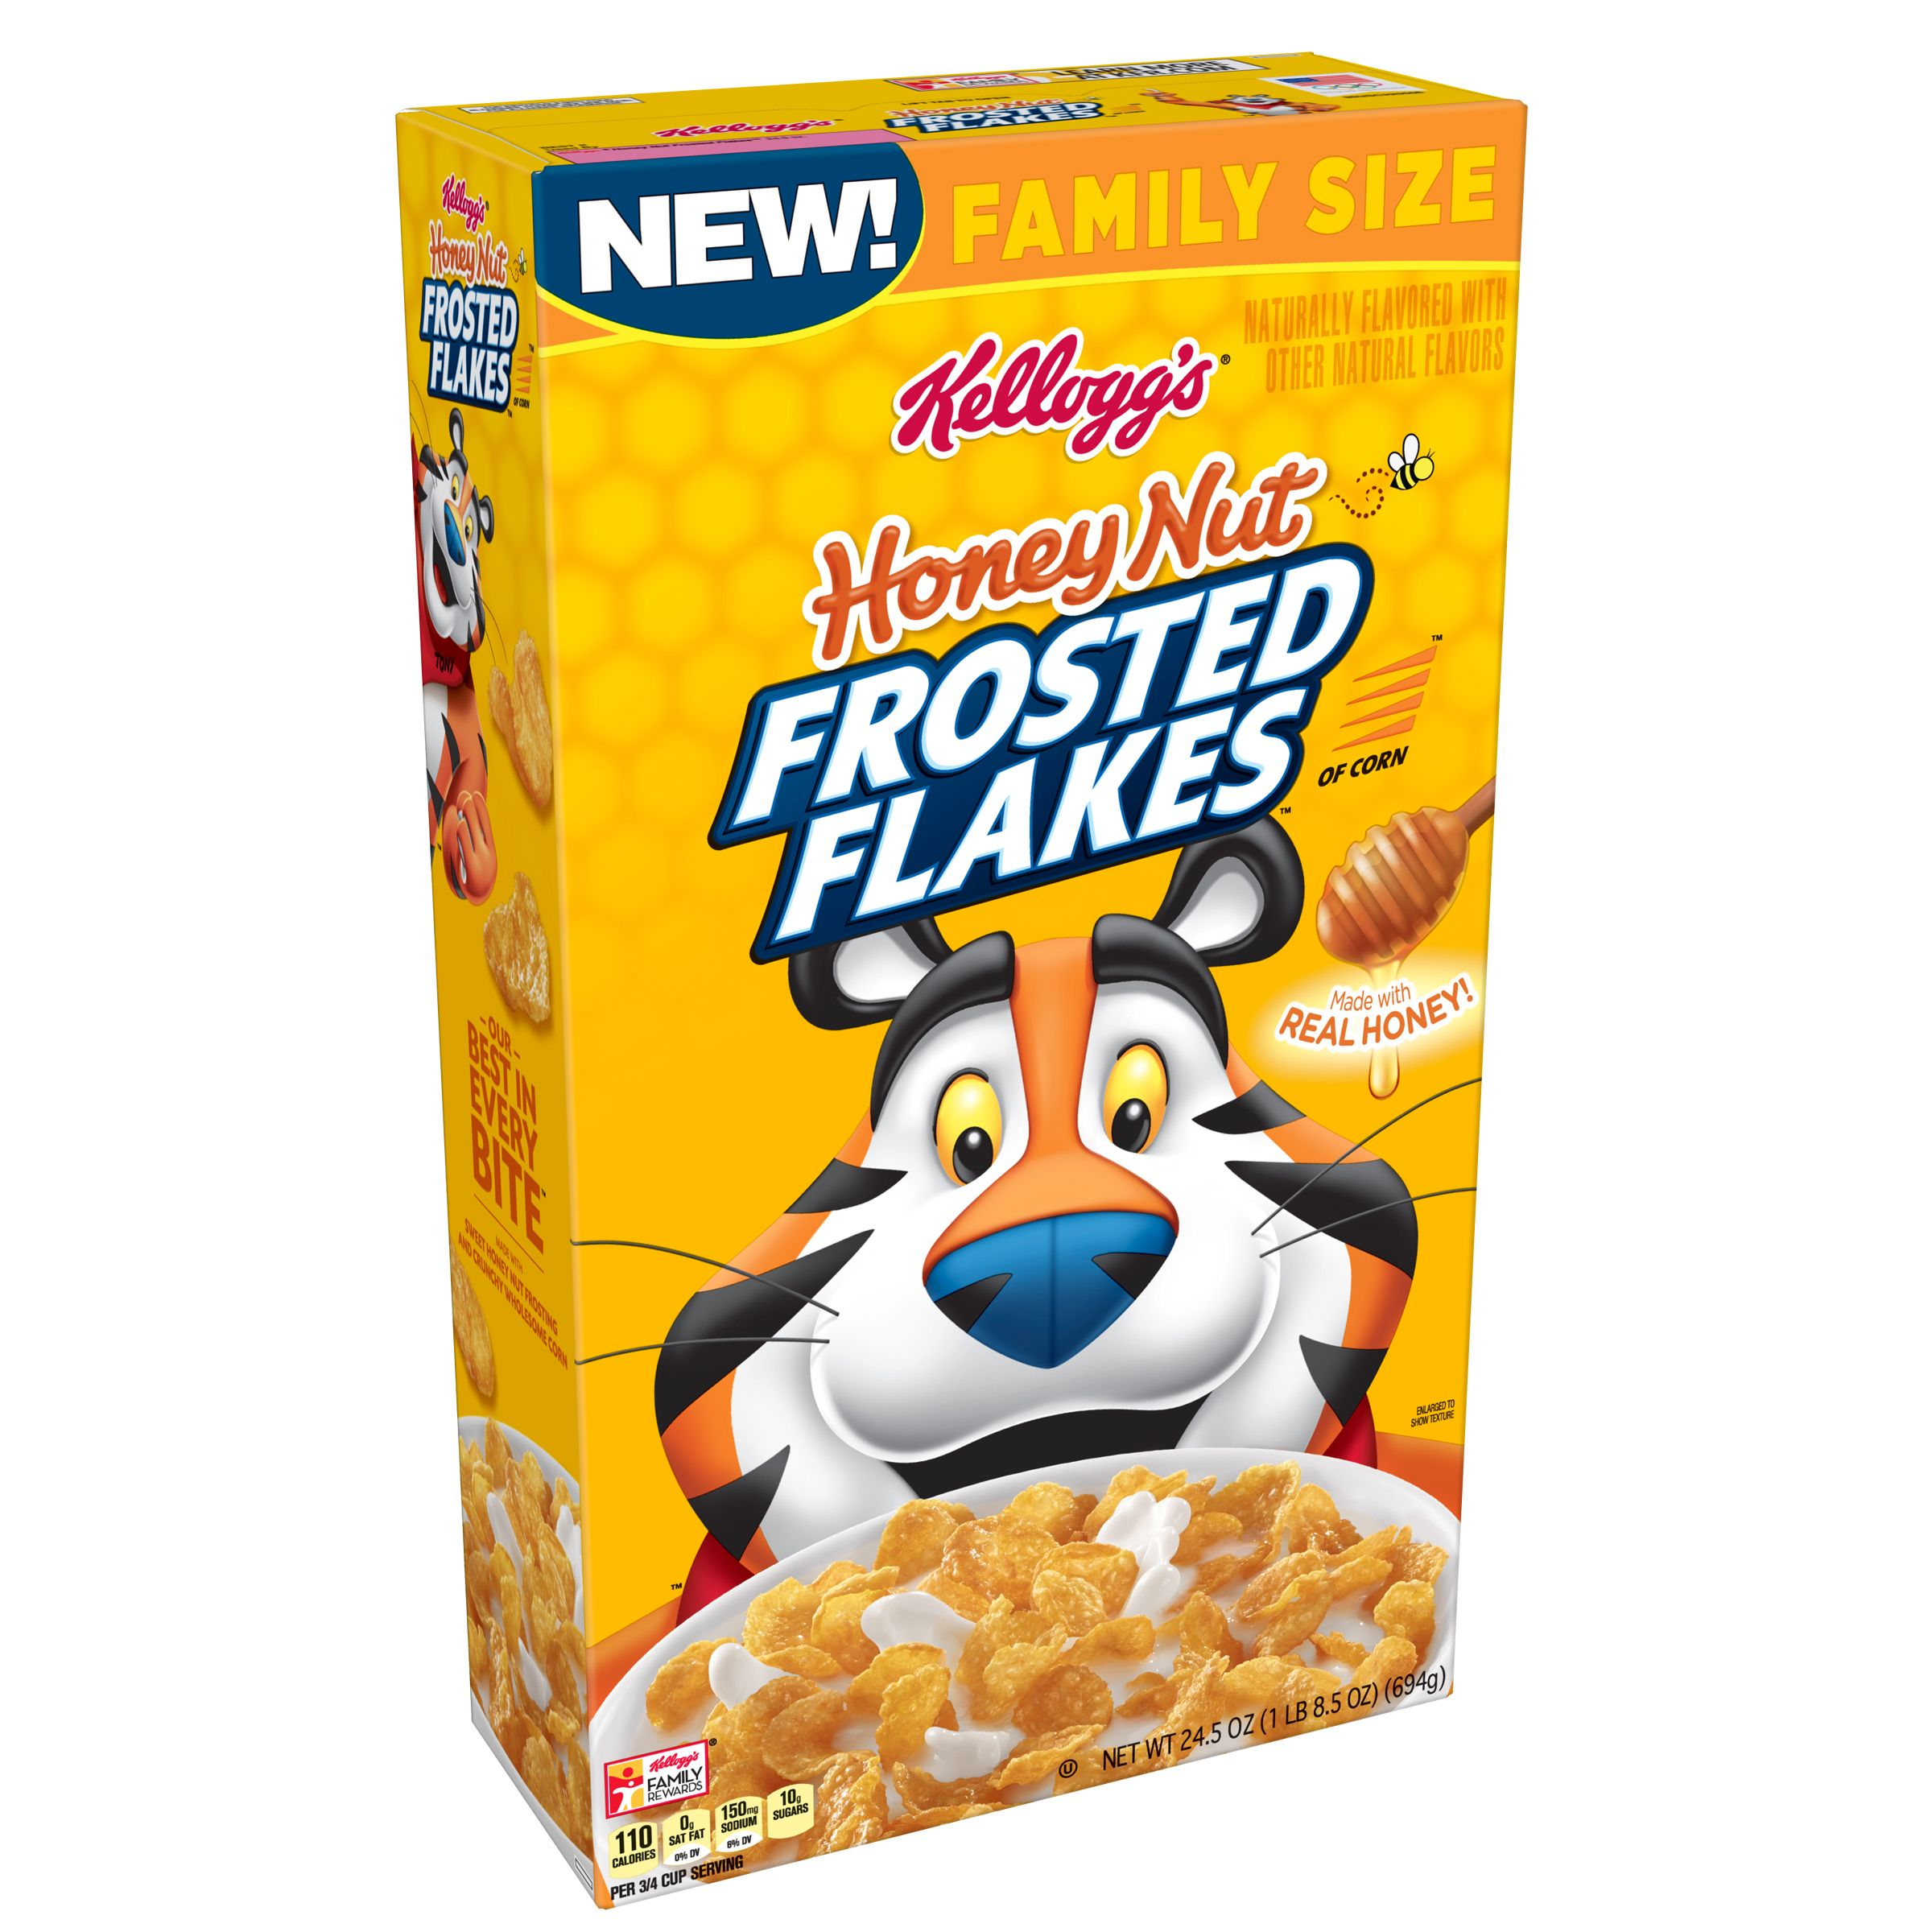 Characters & Dolls Collectibles Good Tony The Tiger Frosted Flakes Kellogg's Cereal Advertising Premium Doll Toy Box Choice Materials